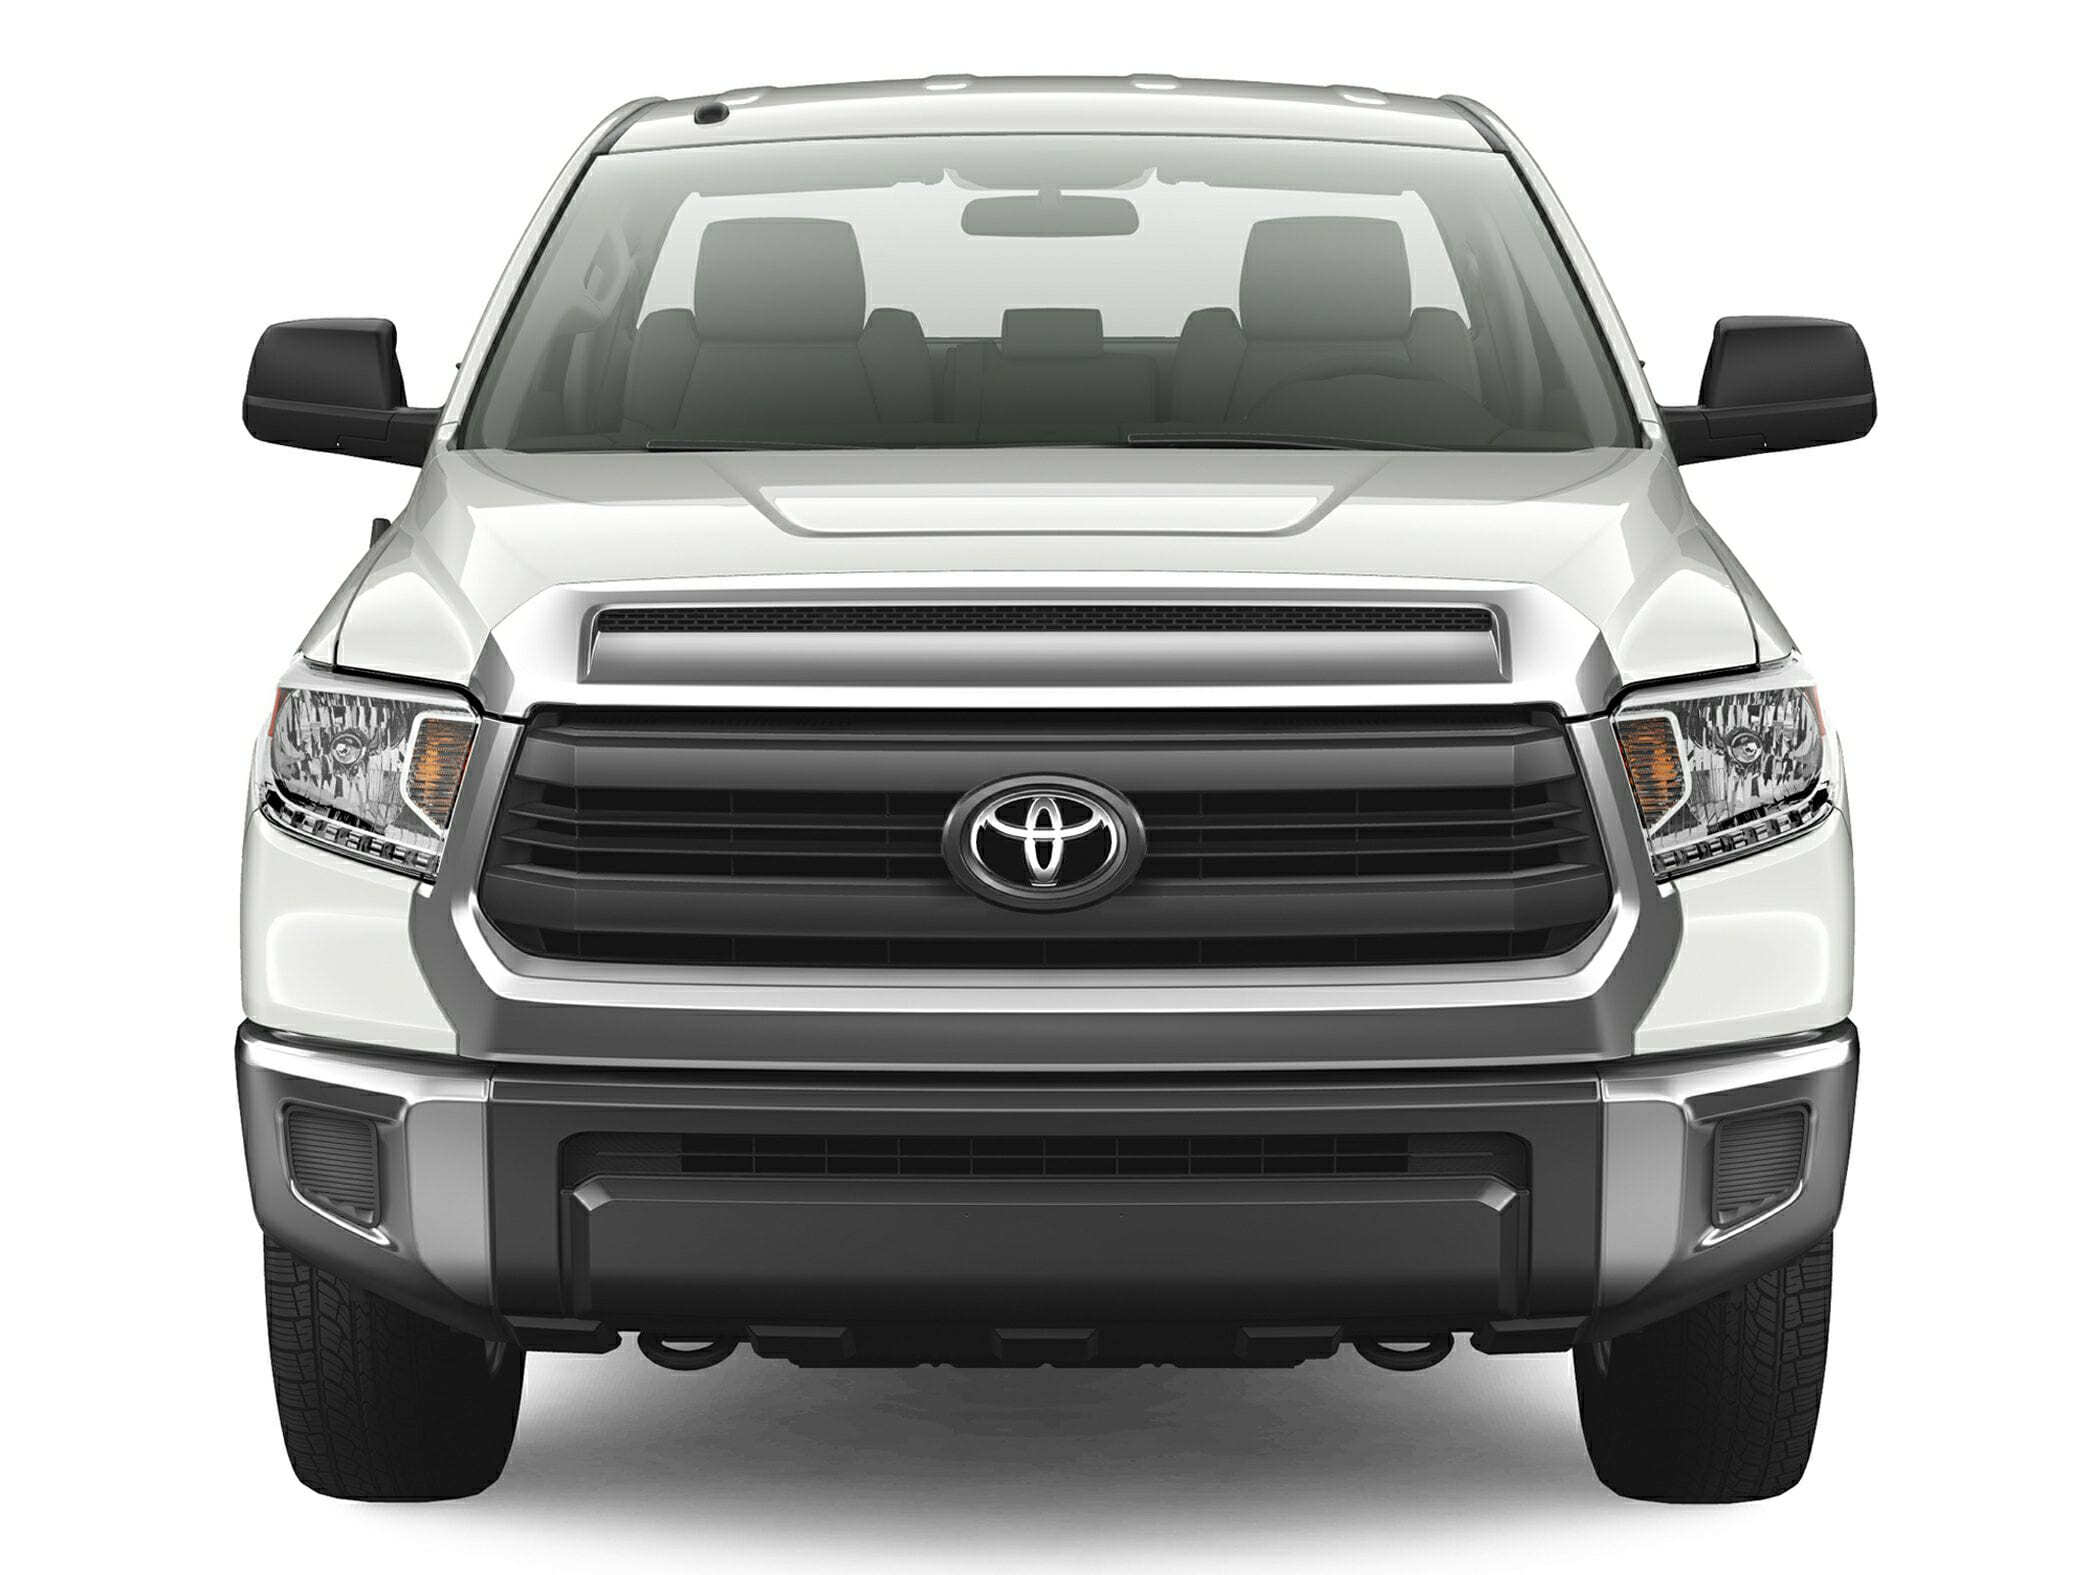 2014-Toyota-Tundra-Truck-SR-V6-4x2-Regular-Cab-Long-Bed-8-ft.-box-145.7-in.-WB-Photo-2.png